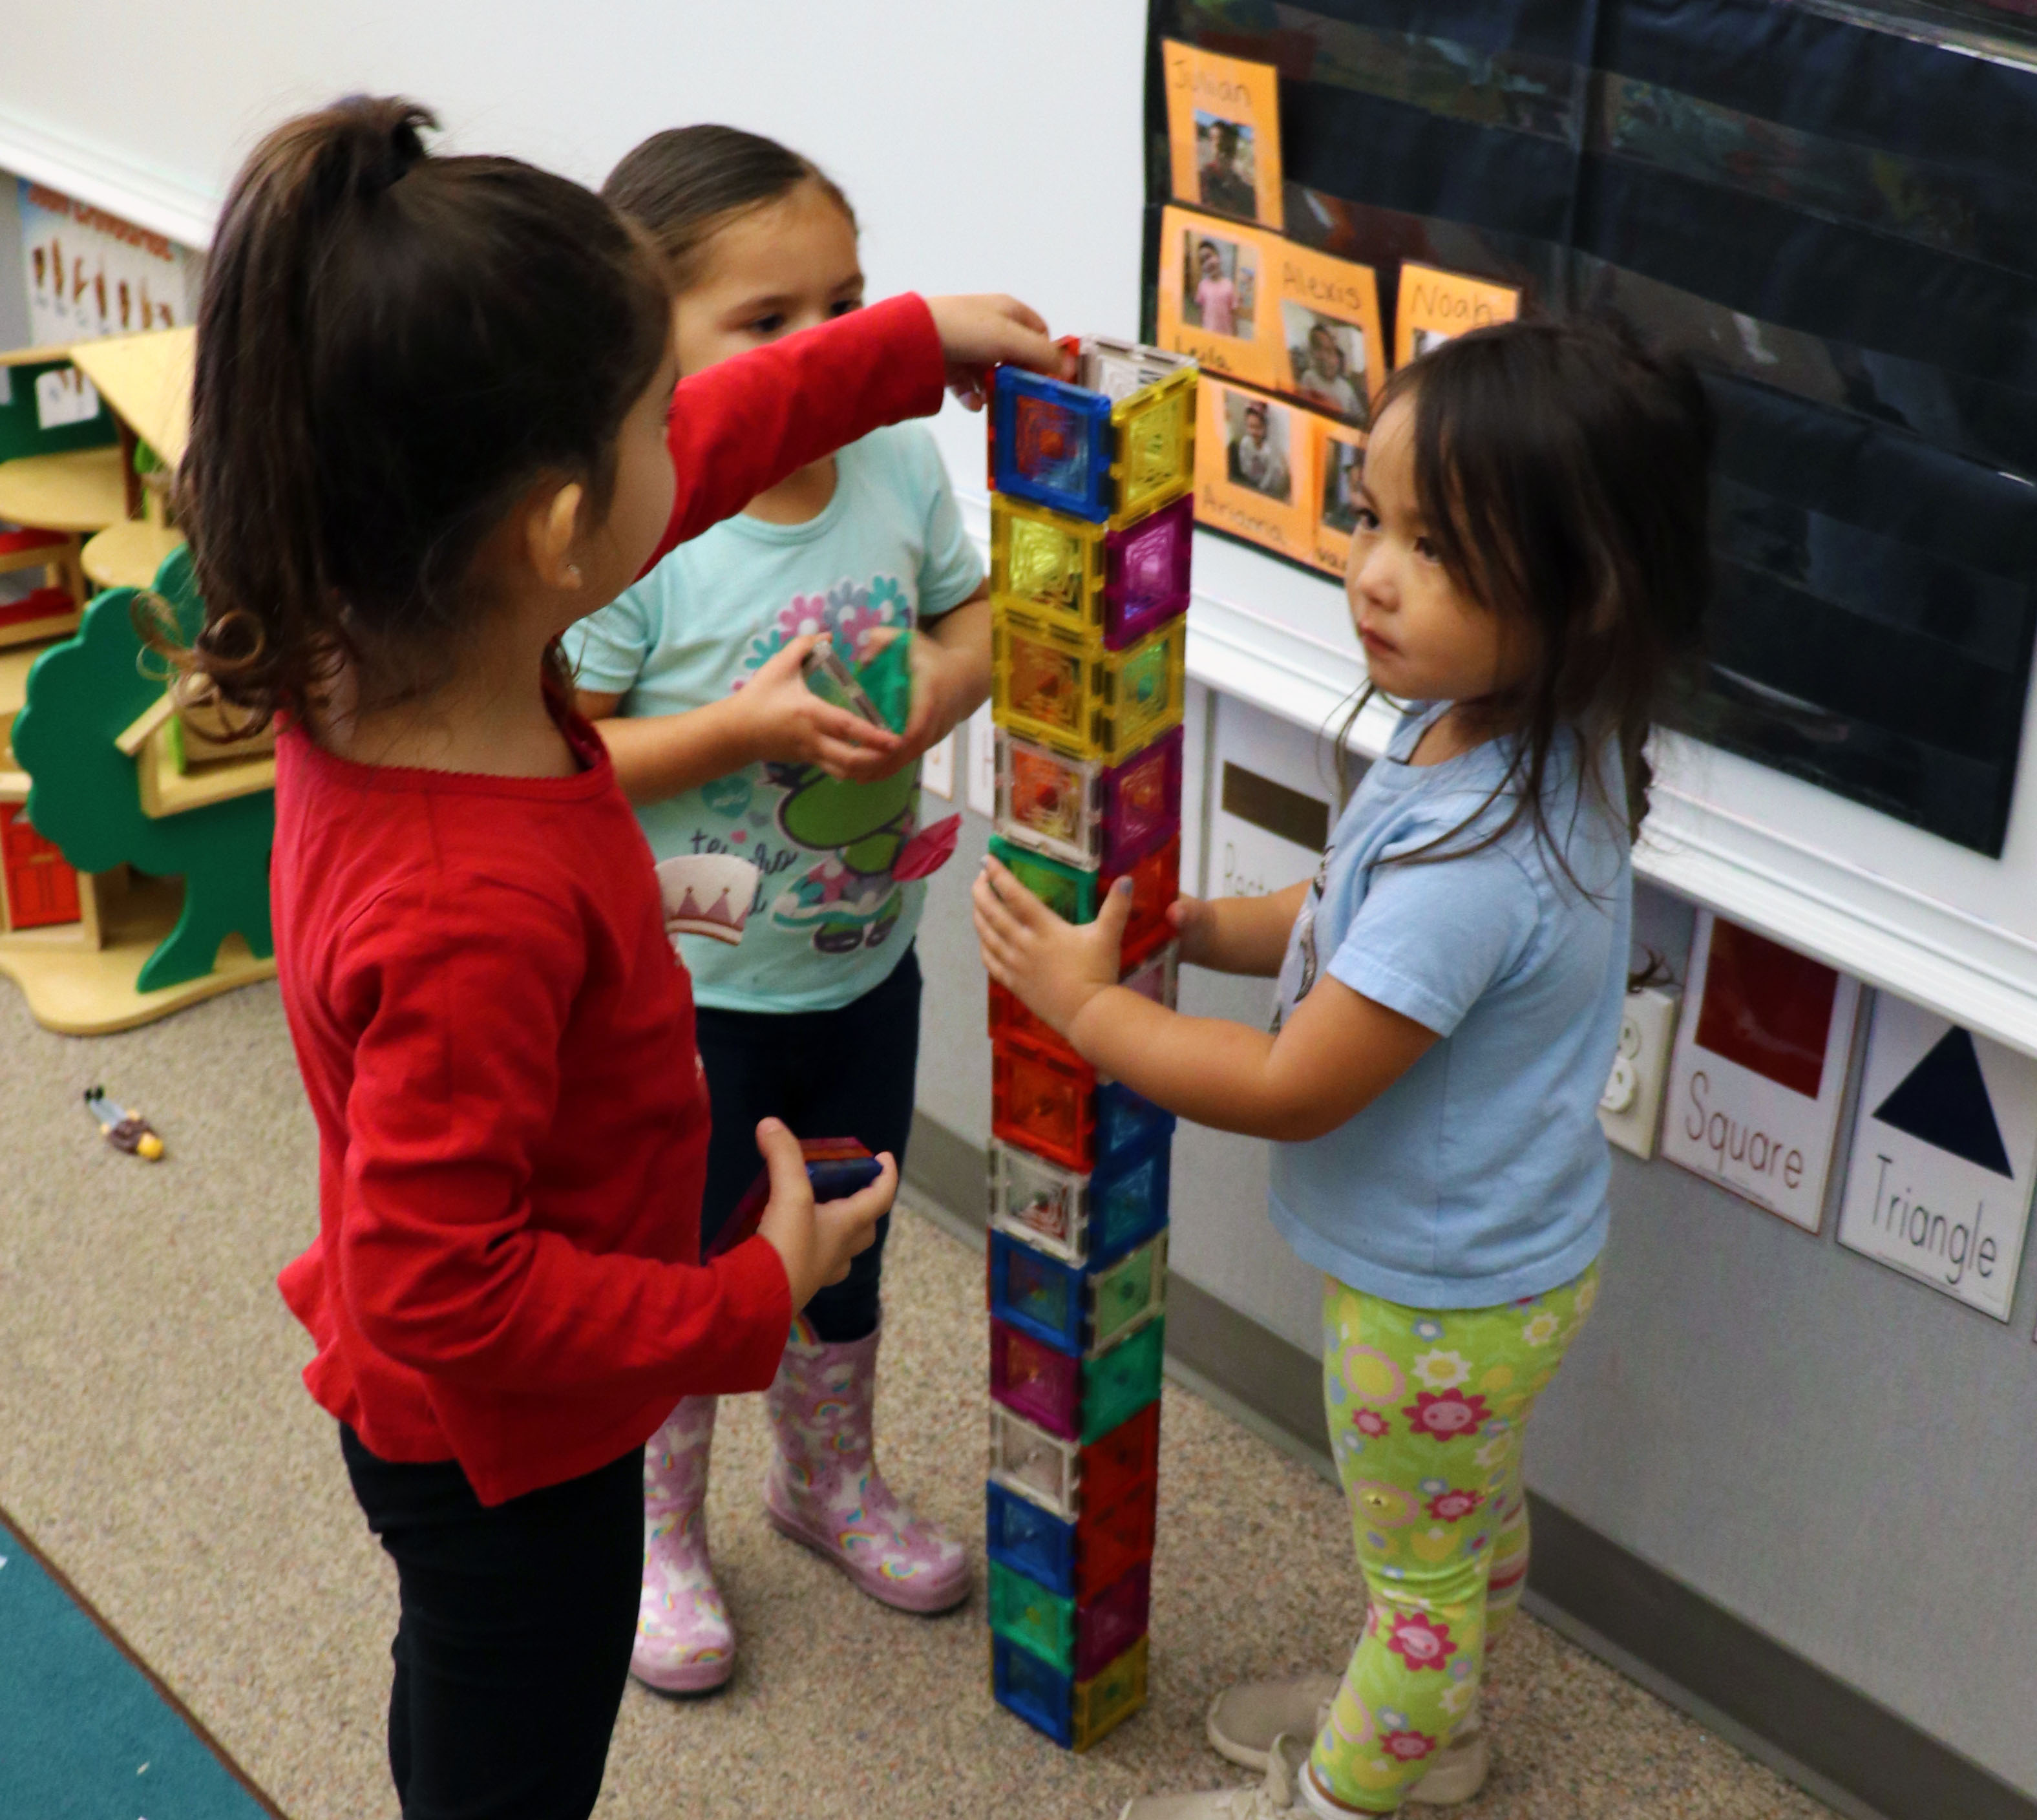 Girls building magnetic tower